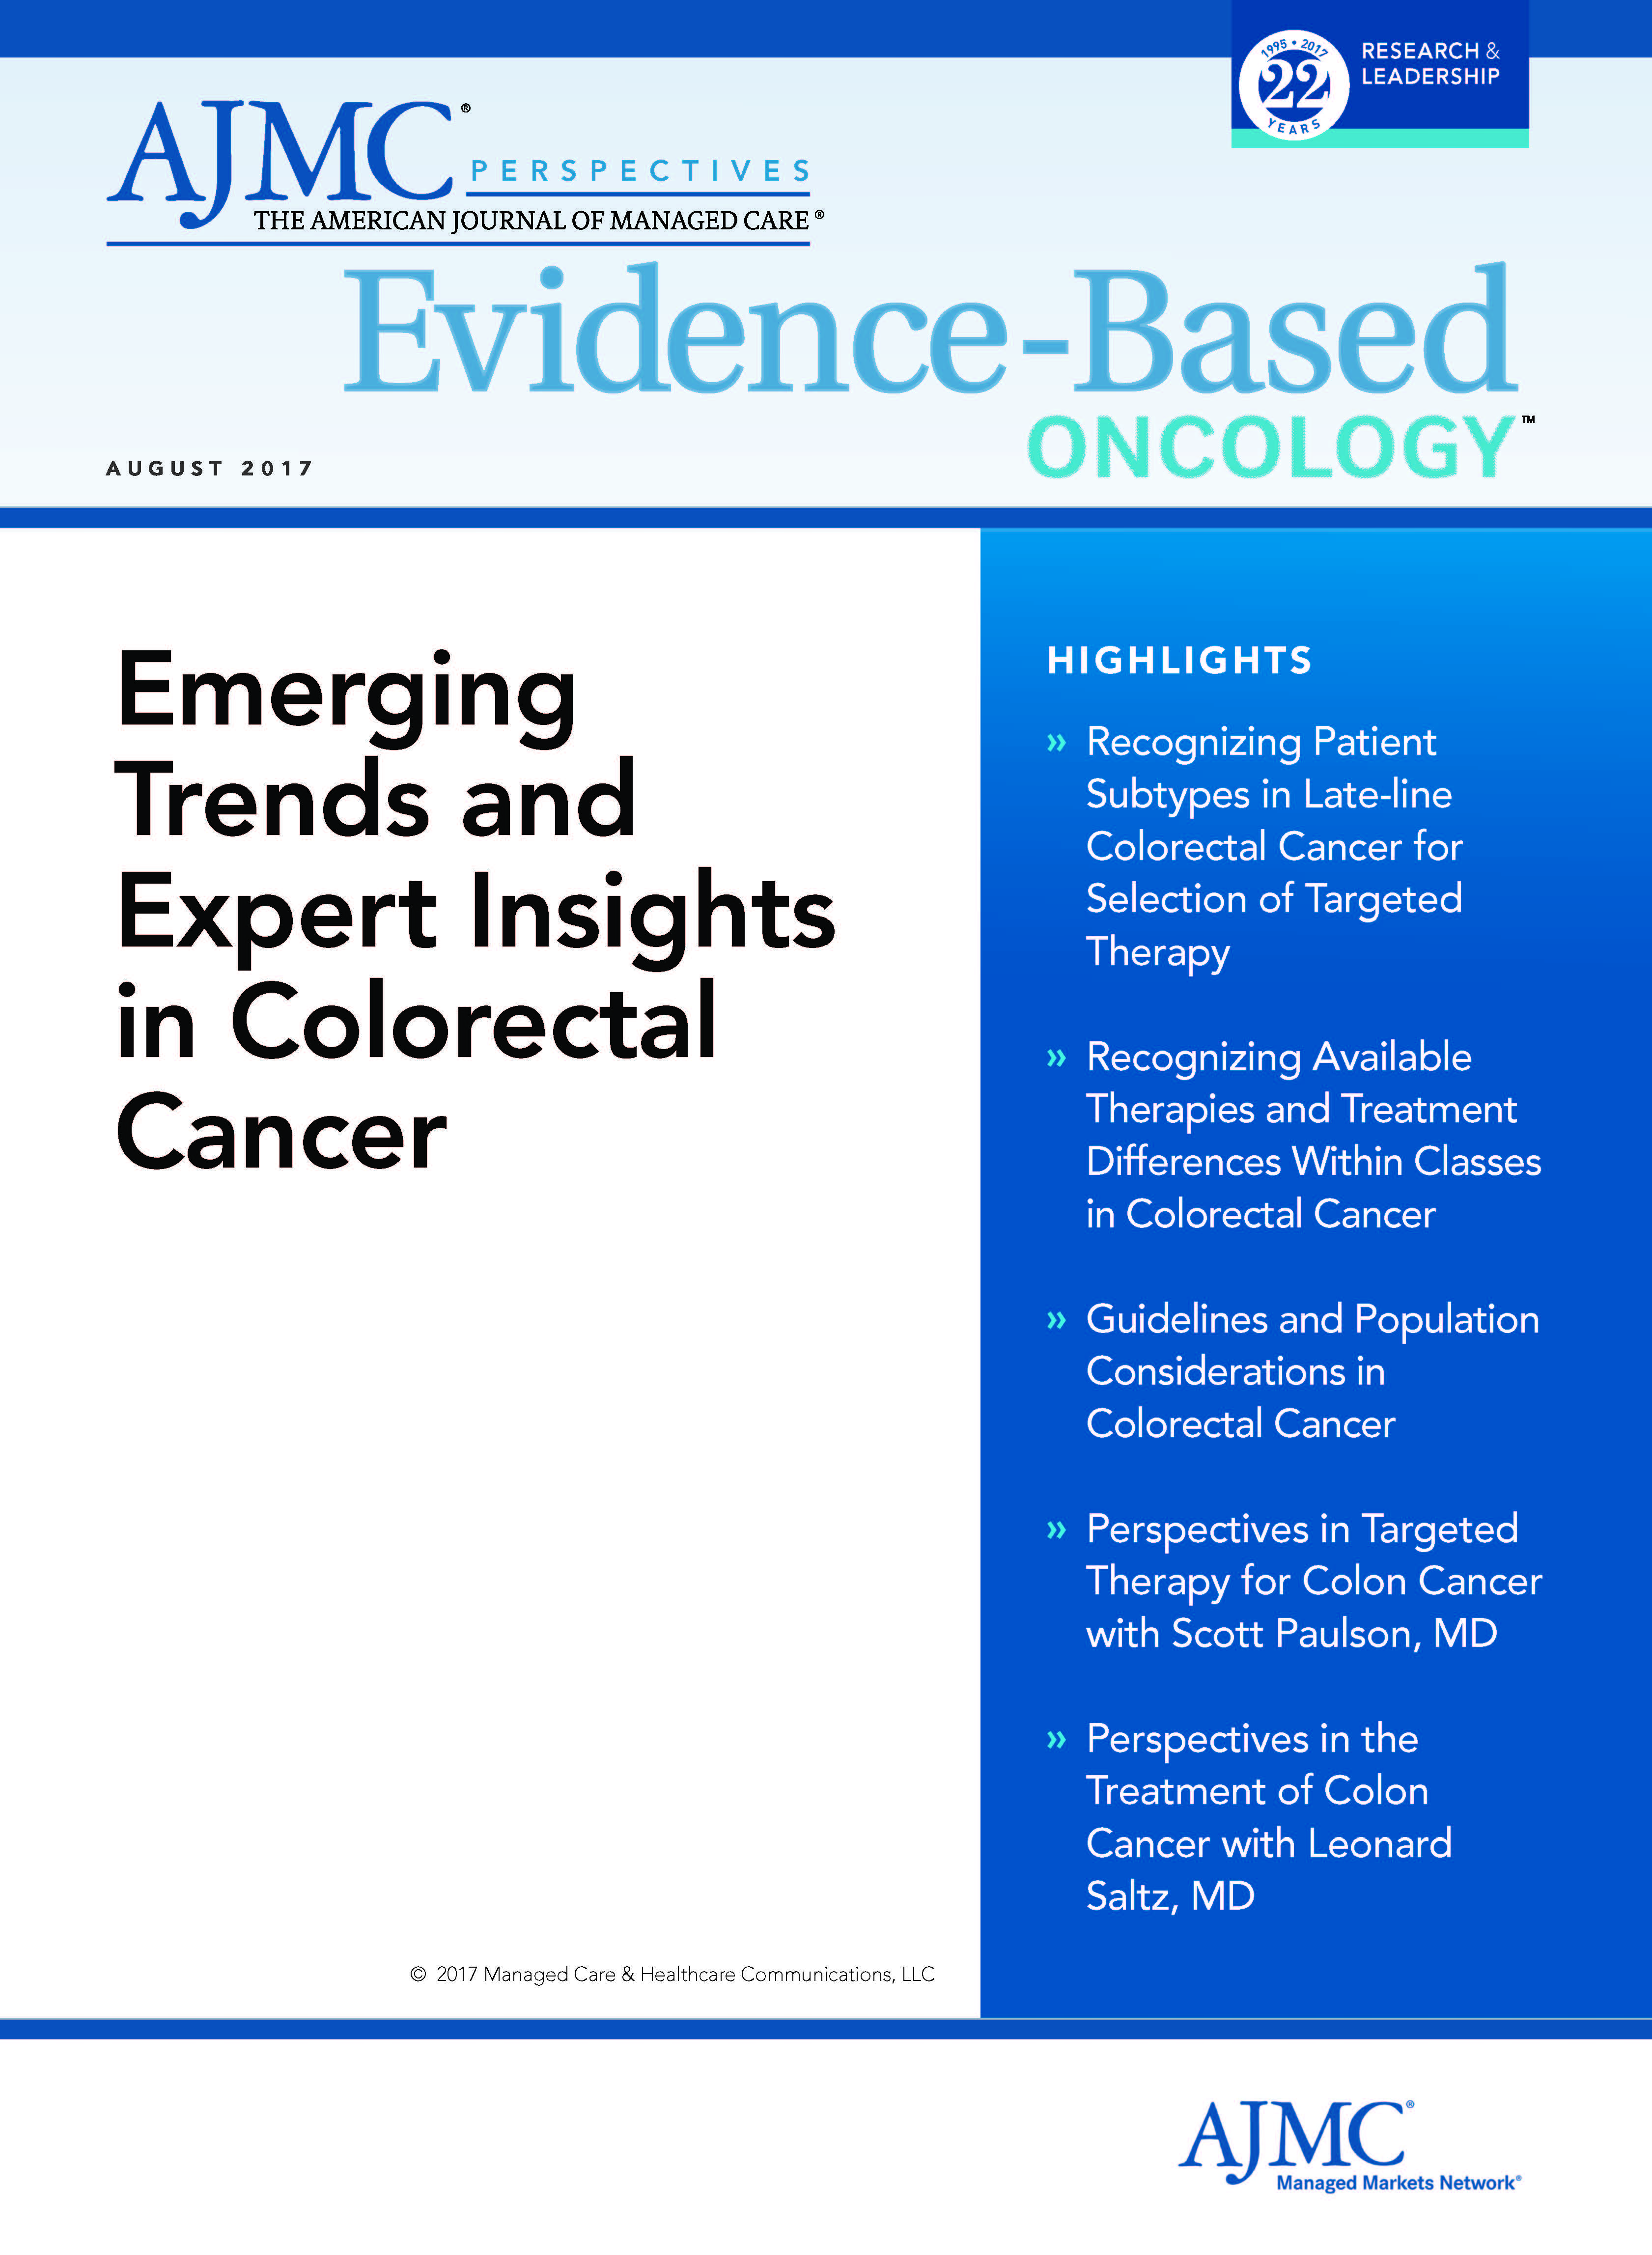 Emerging Trends and Expert Insights in Colorectal Cancer